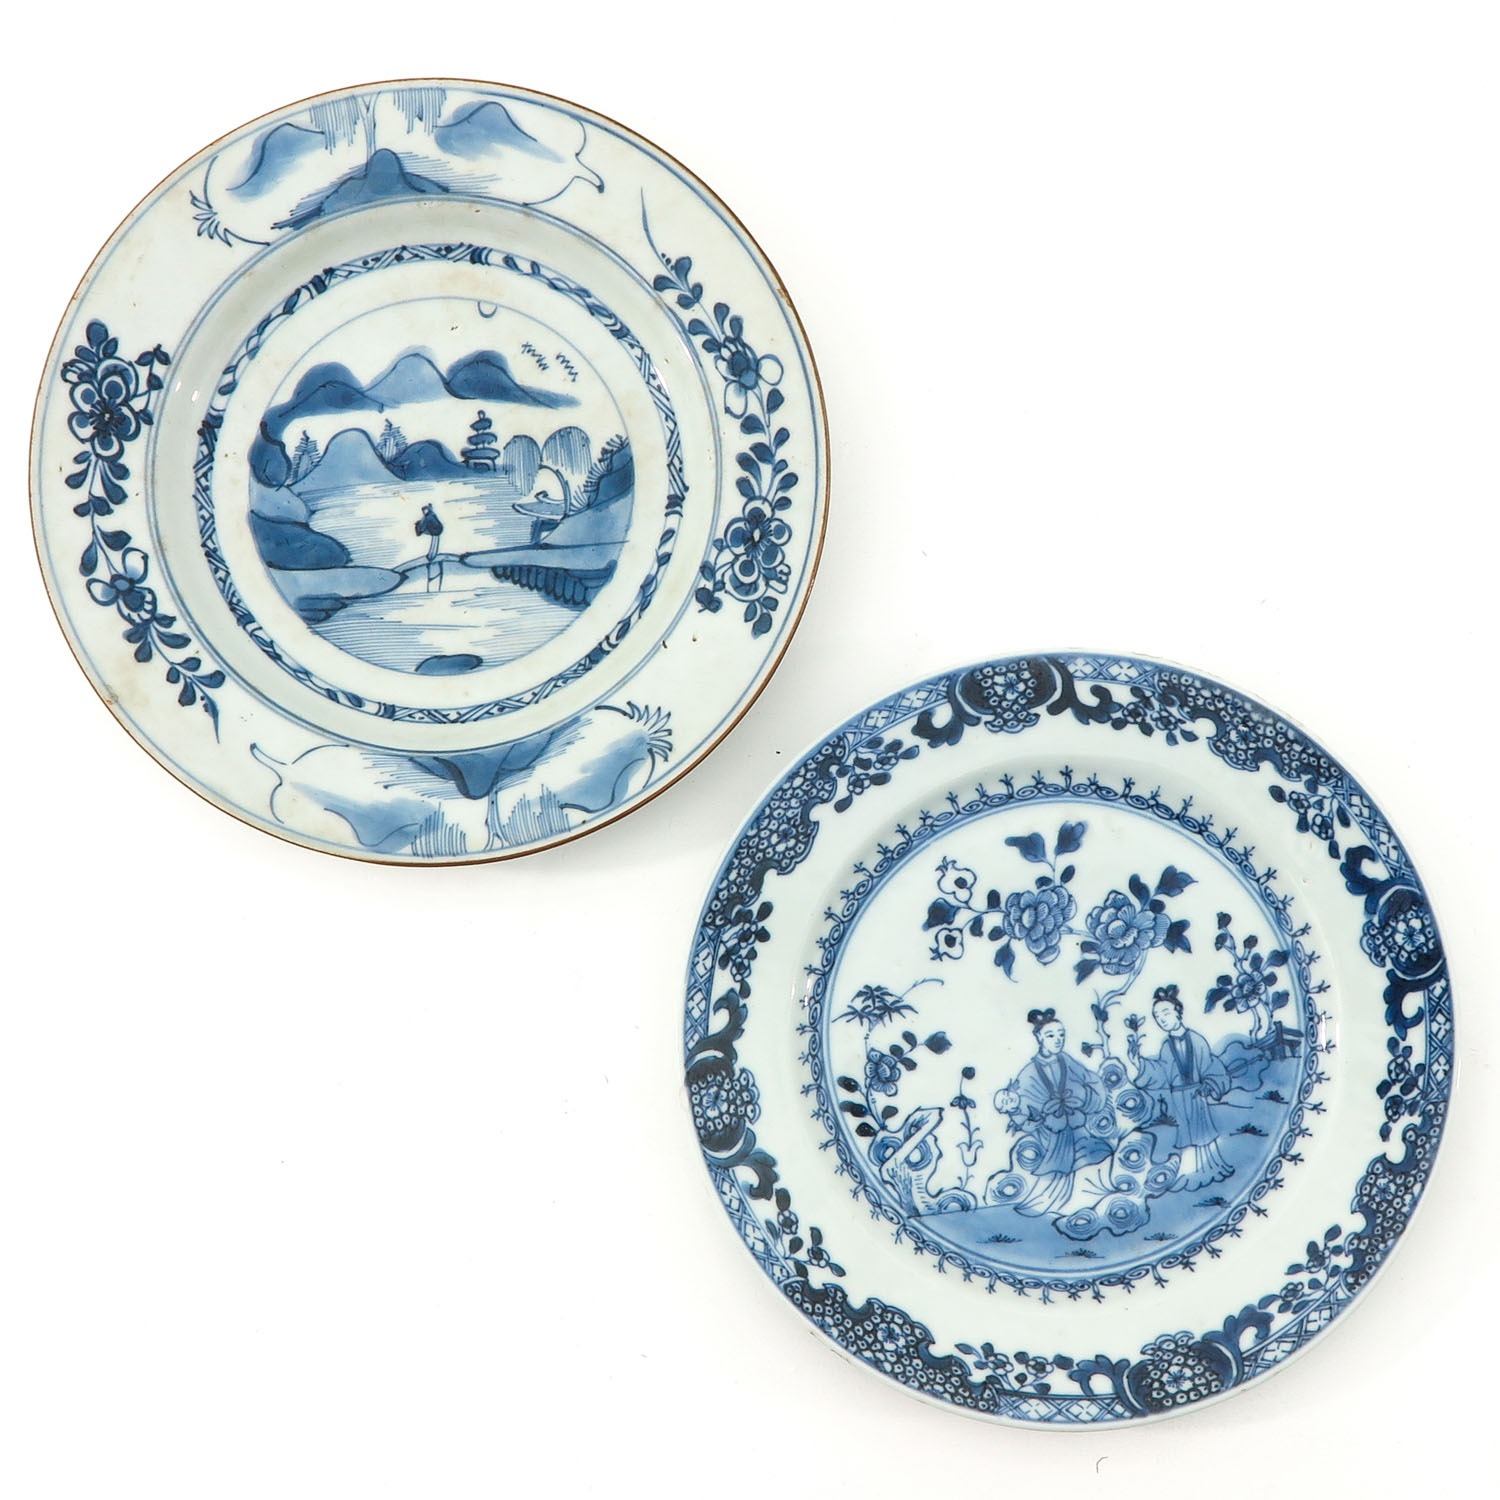 A Collection of 4 Blue and White Plates - Image 3 of 10